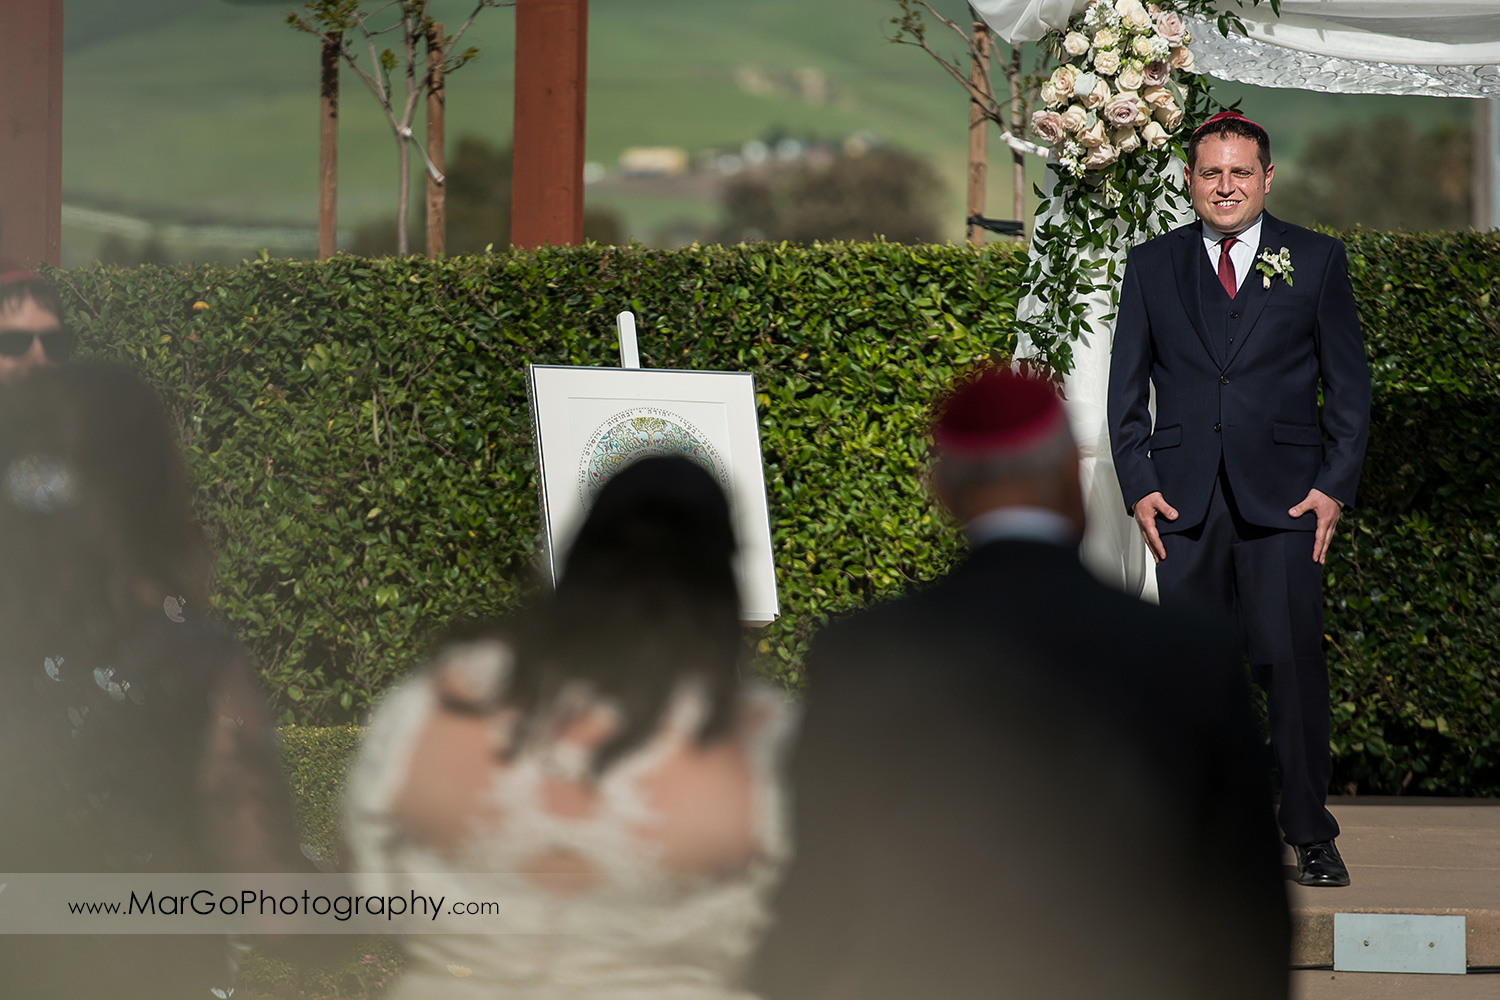 jewish groom waiting for the bride during wedding ceremony at Livermore Garre Vineyard and Winery